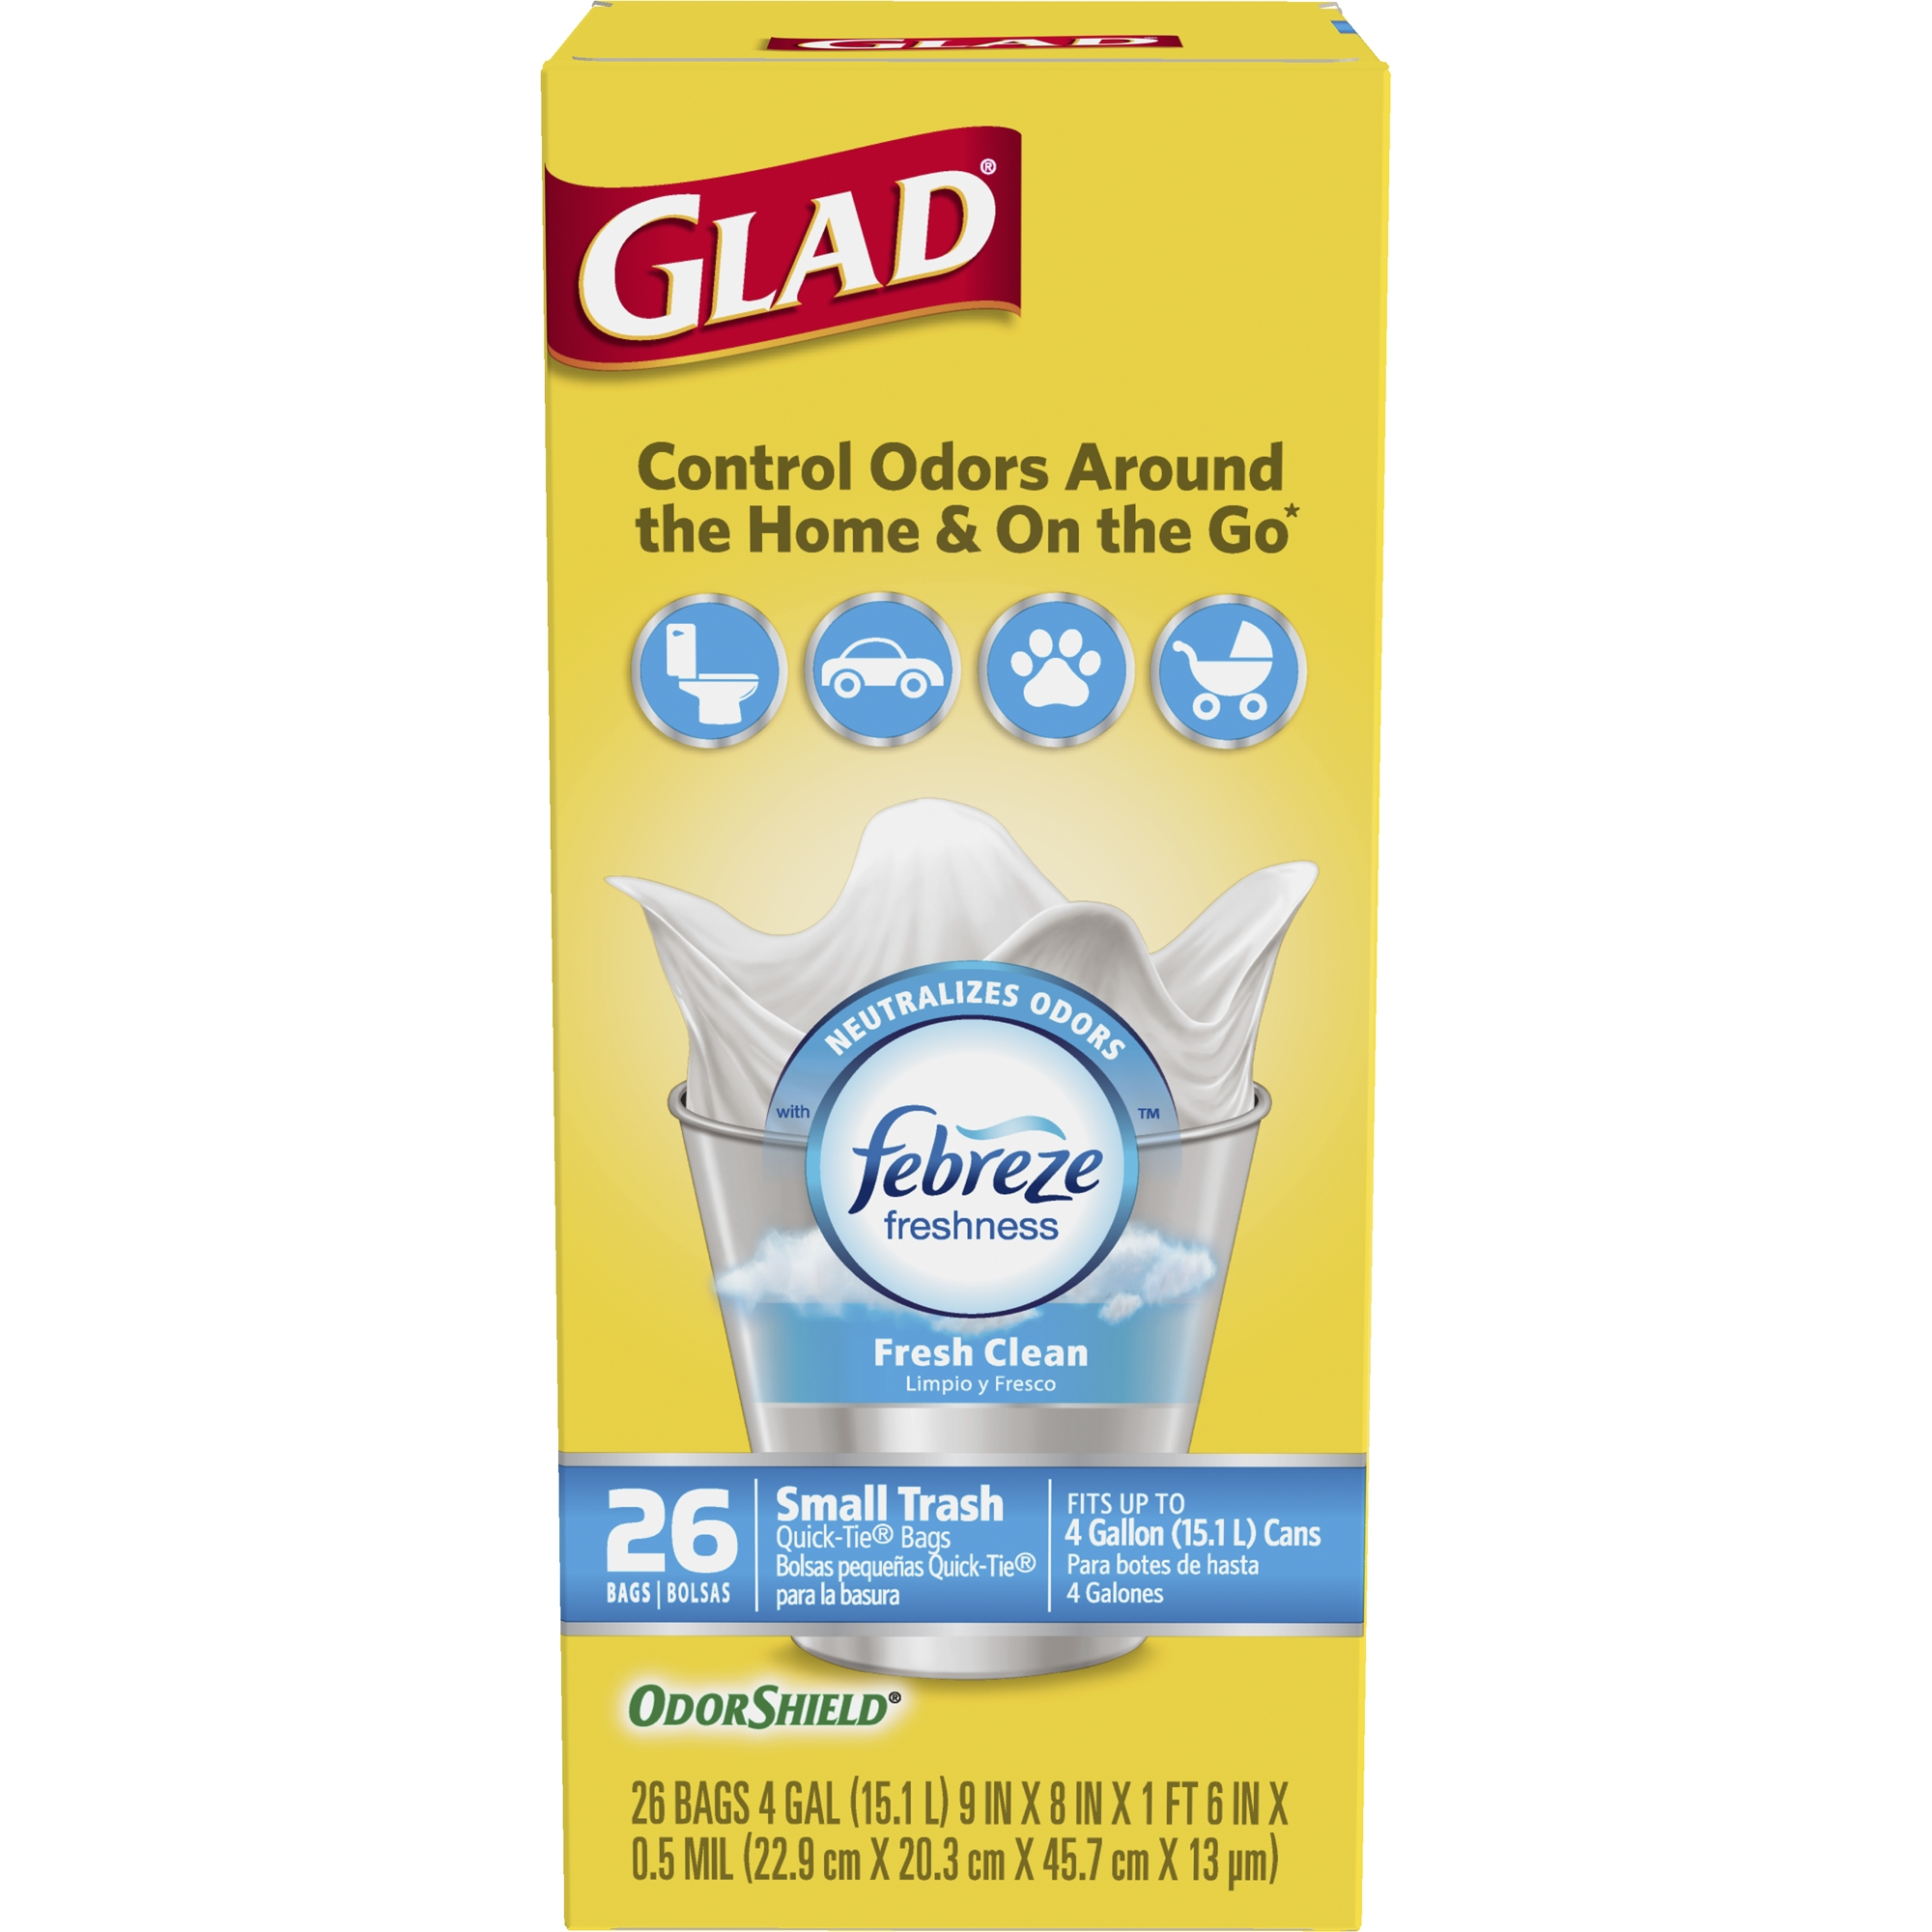 Glad Febreze Fresh Clean OdorShield Trash Bags, 4 Gallon, 26 Ct